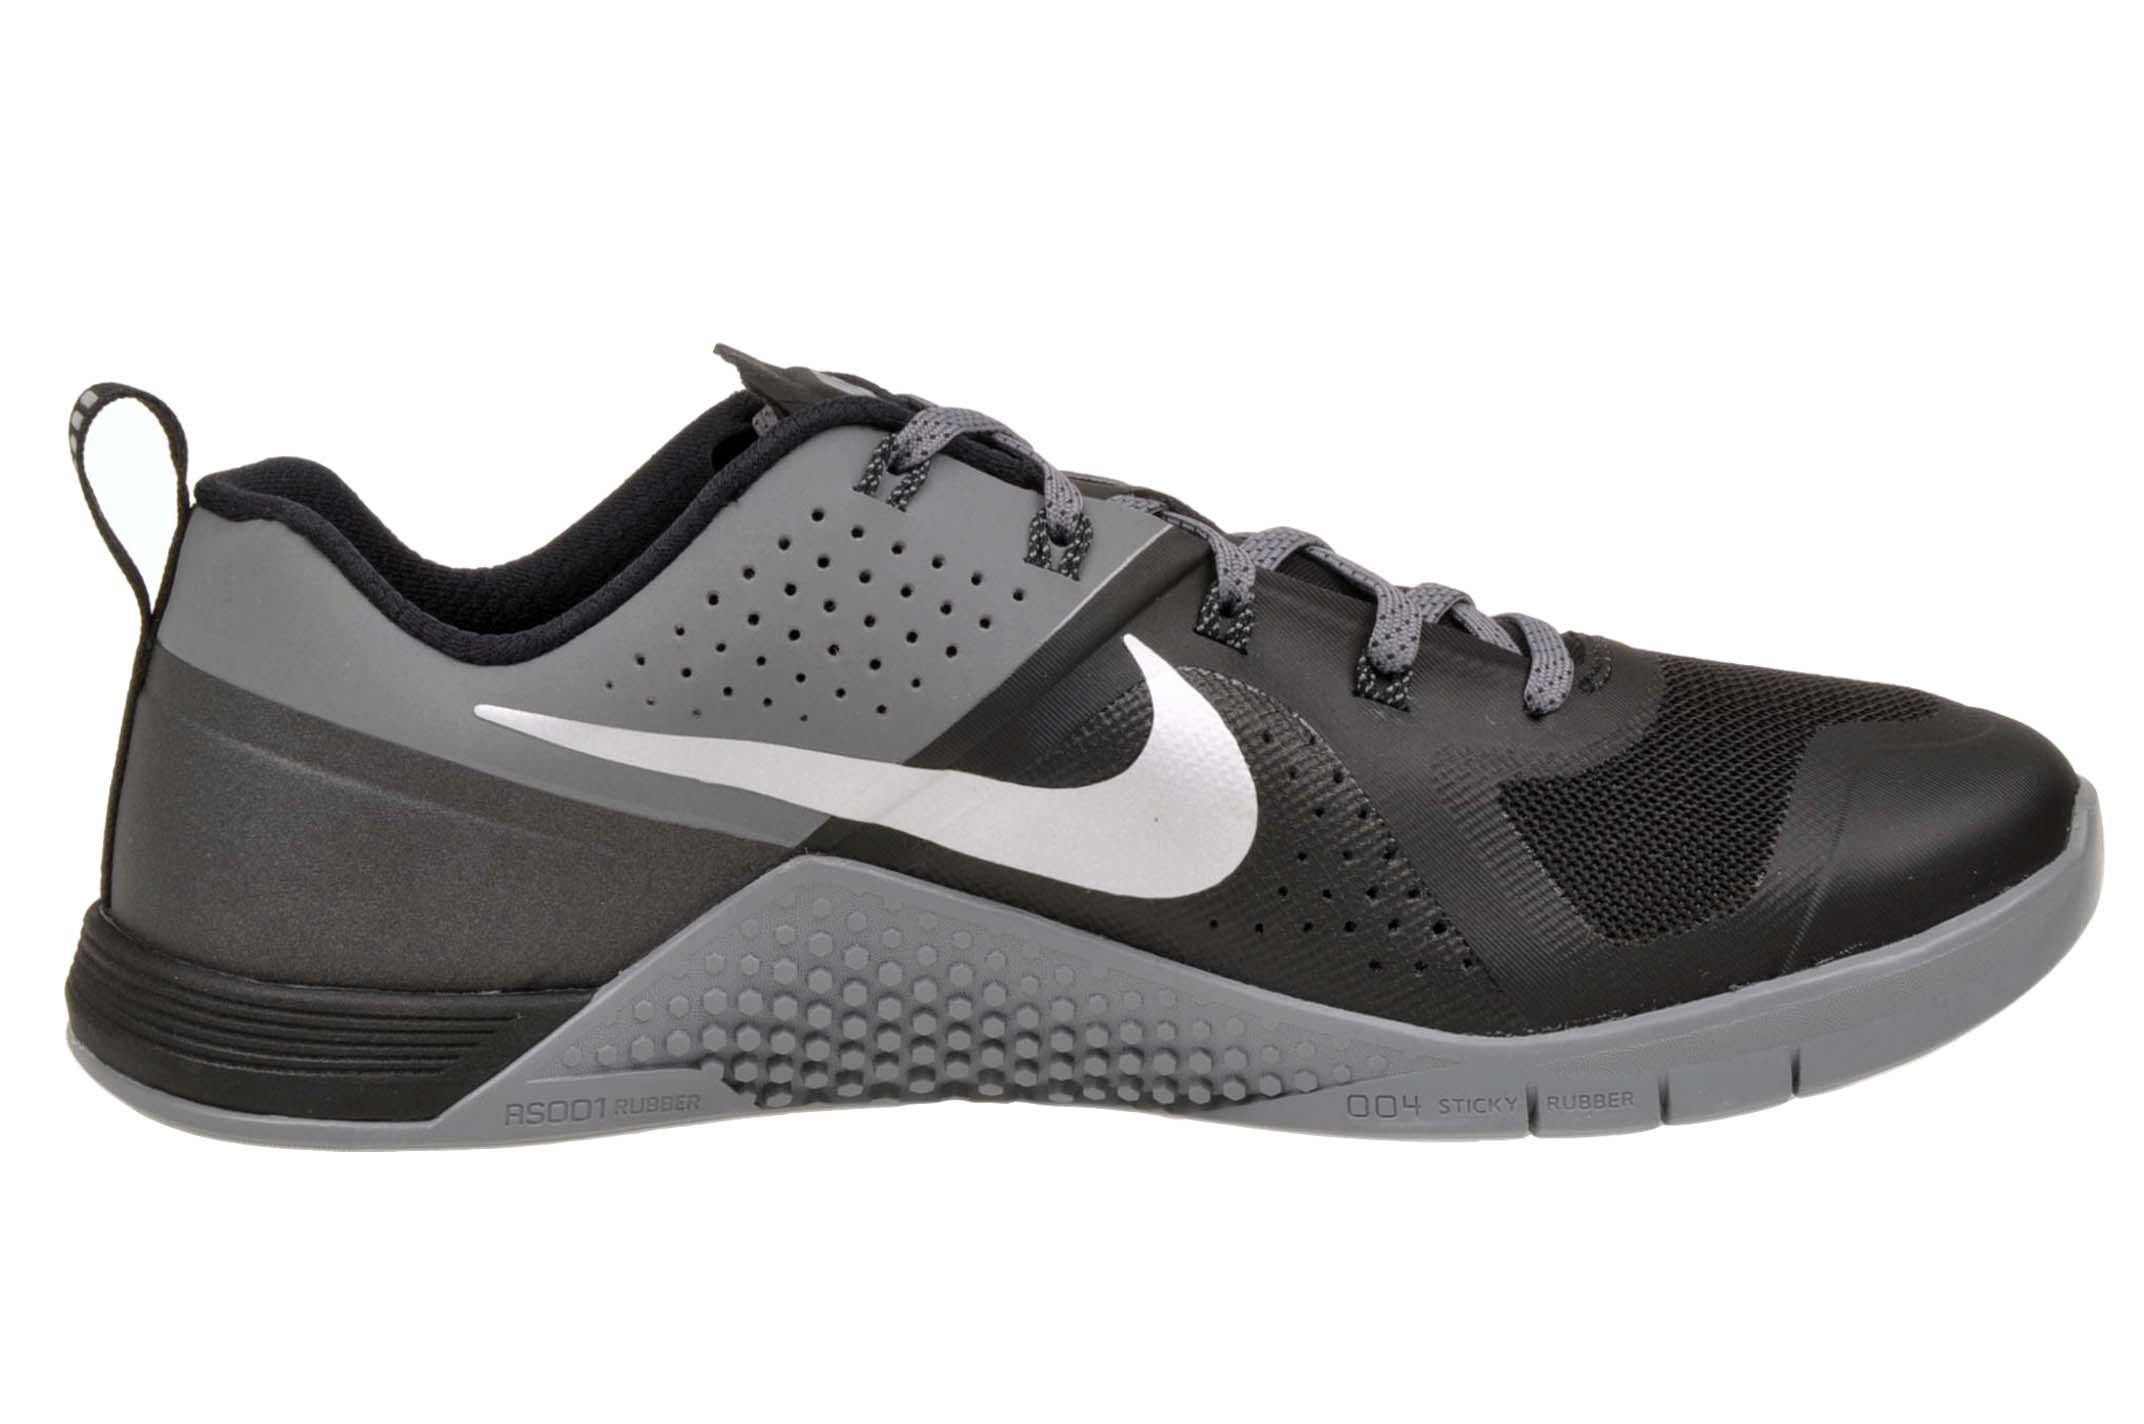 ba6492f54853 ... Nike Metcon 1 Crossfit Mens Training Shoes Trainers Sneakers ...